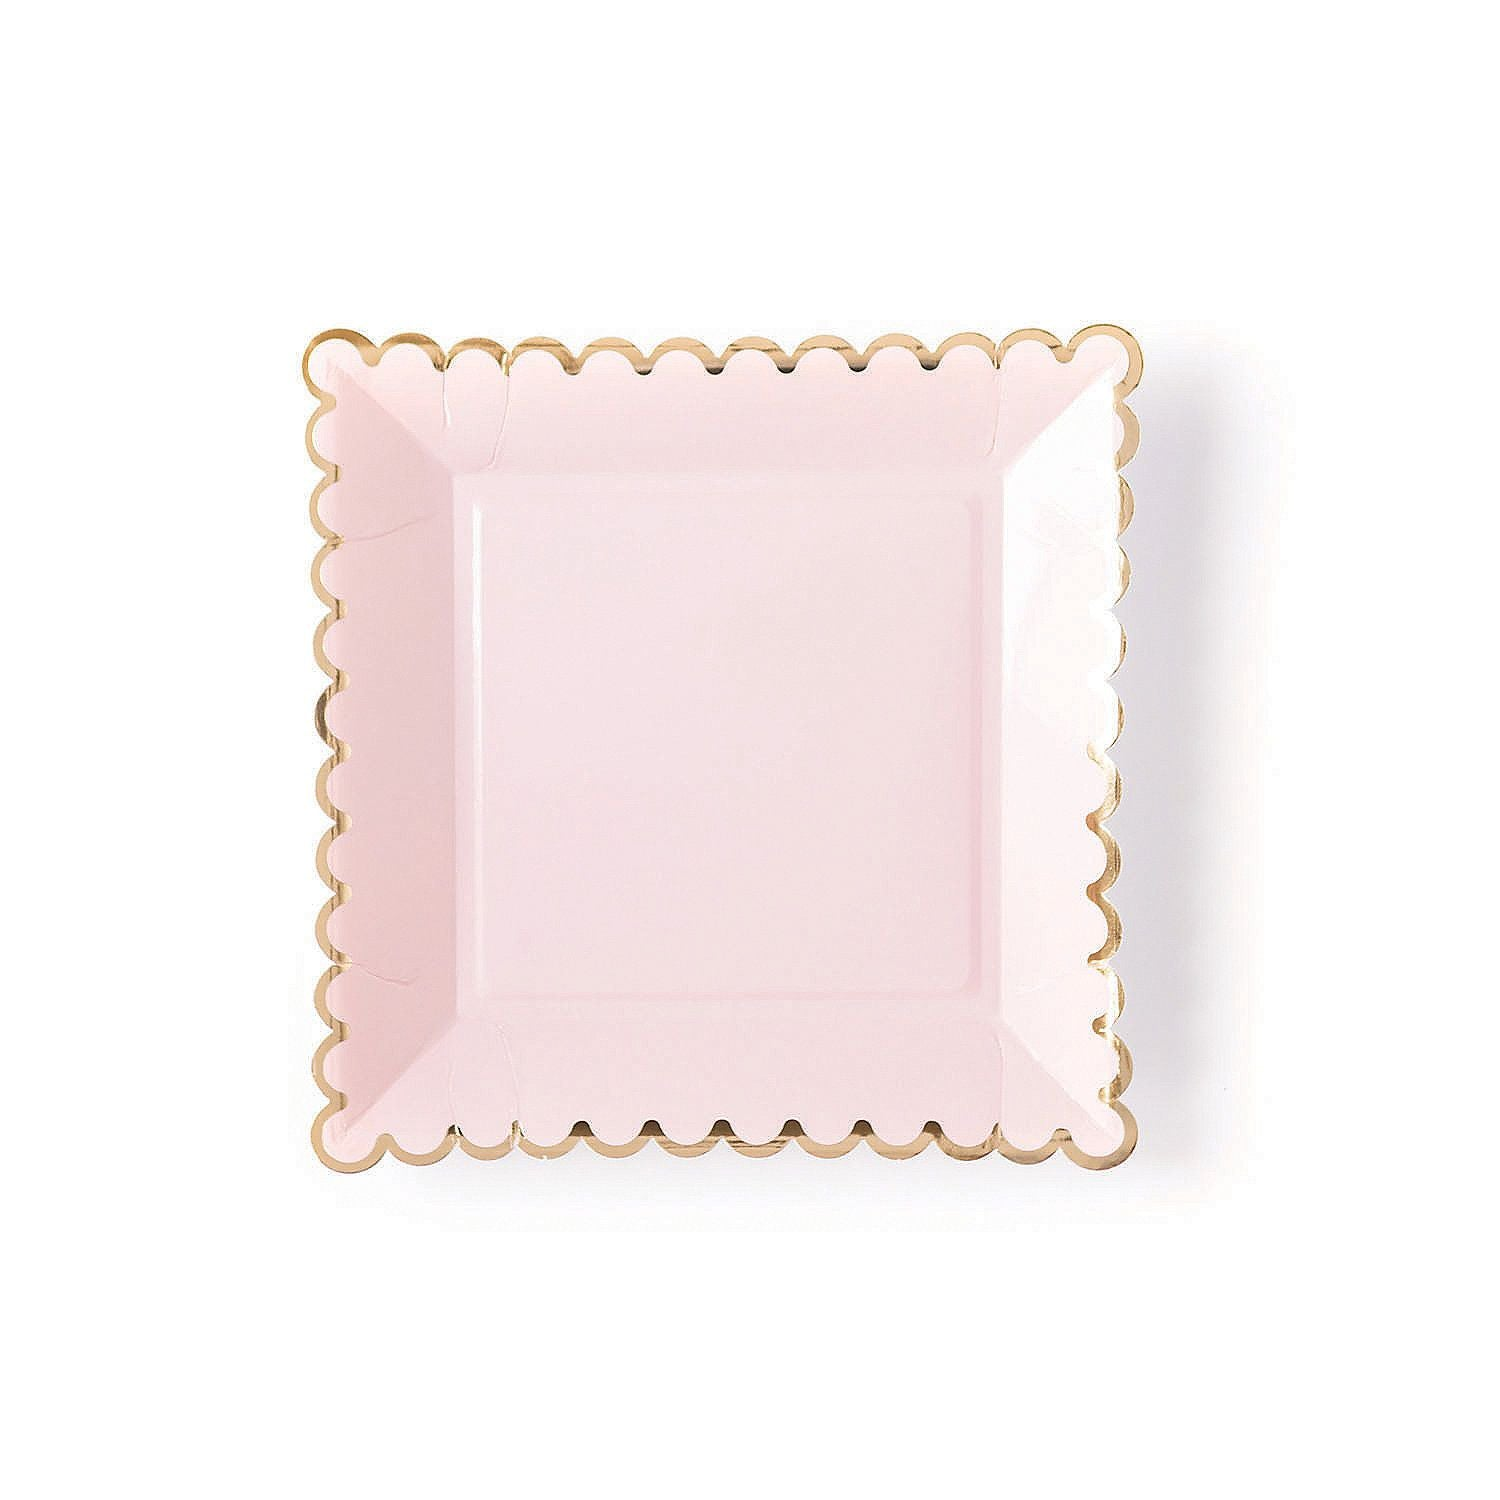 Blush Square Plates With Gold Border